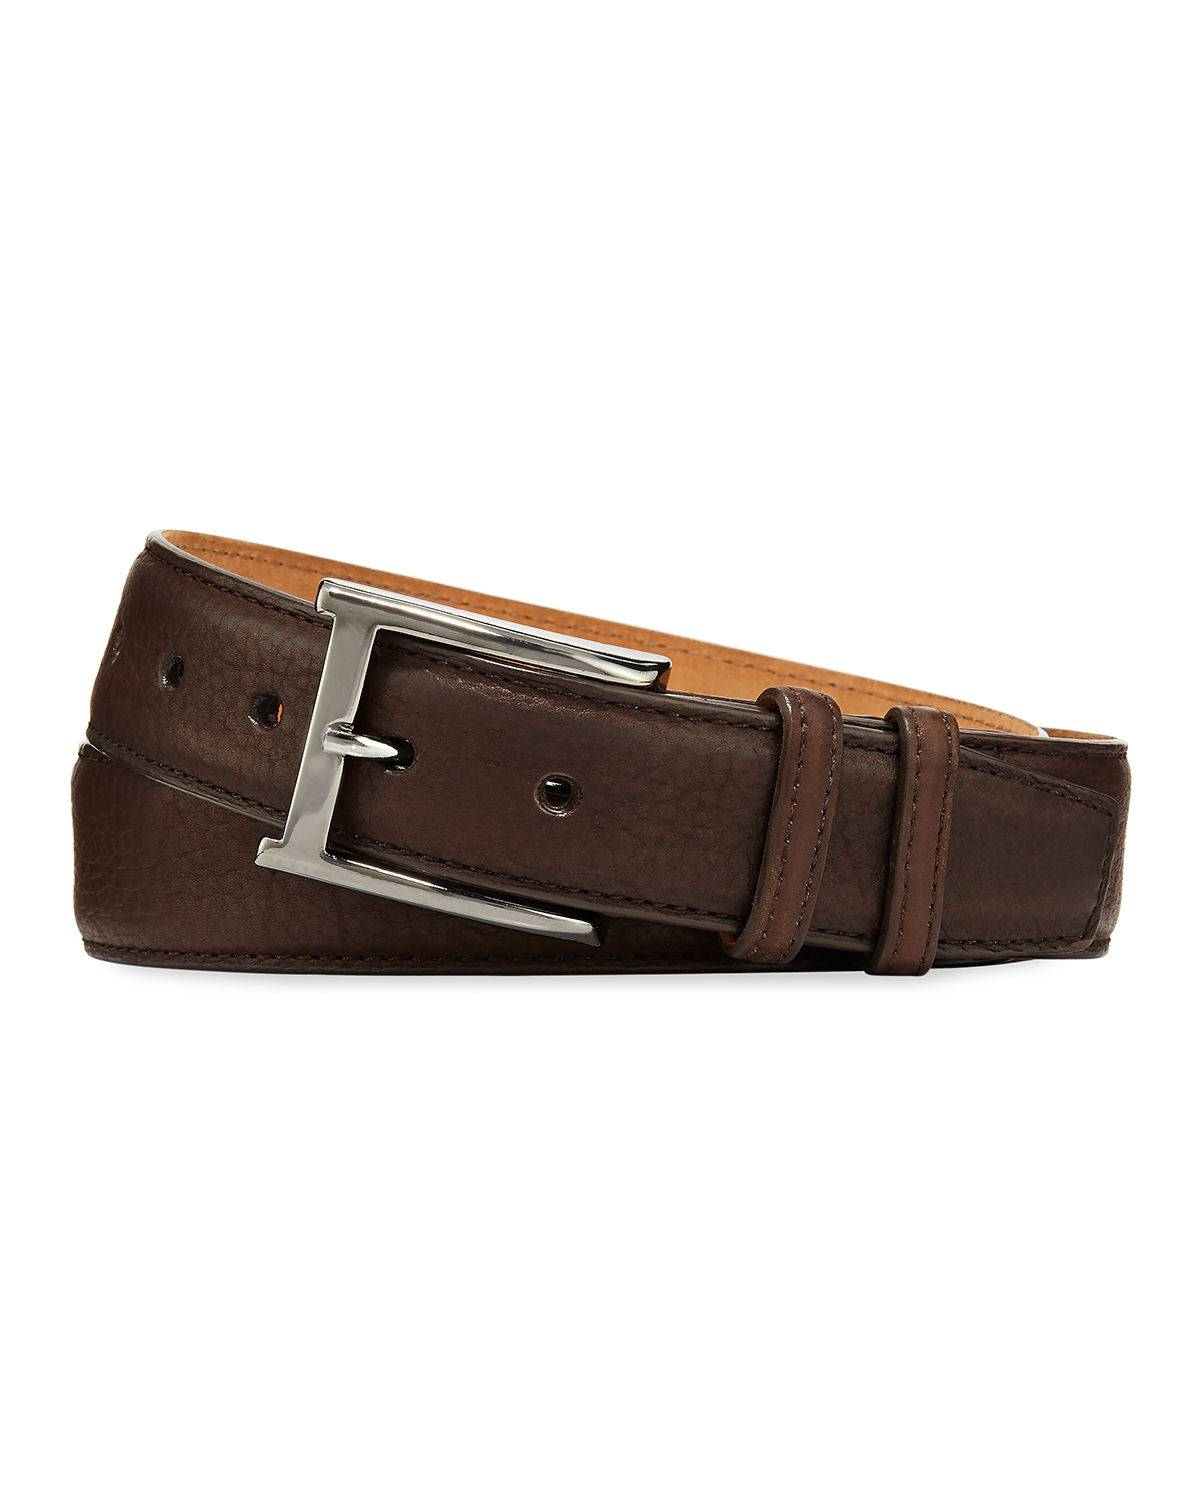 W. Kleinberg Pebbled Bison Leather Belt  - male - CHOCOLATE - Size: 36in / 90cm